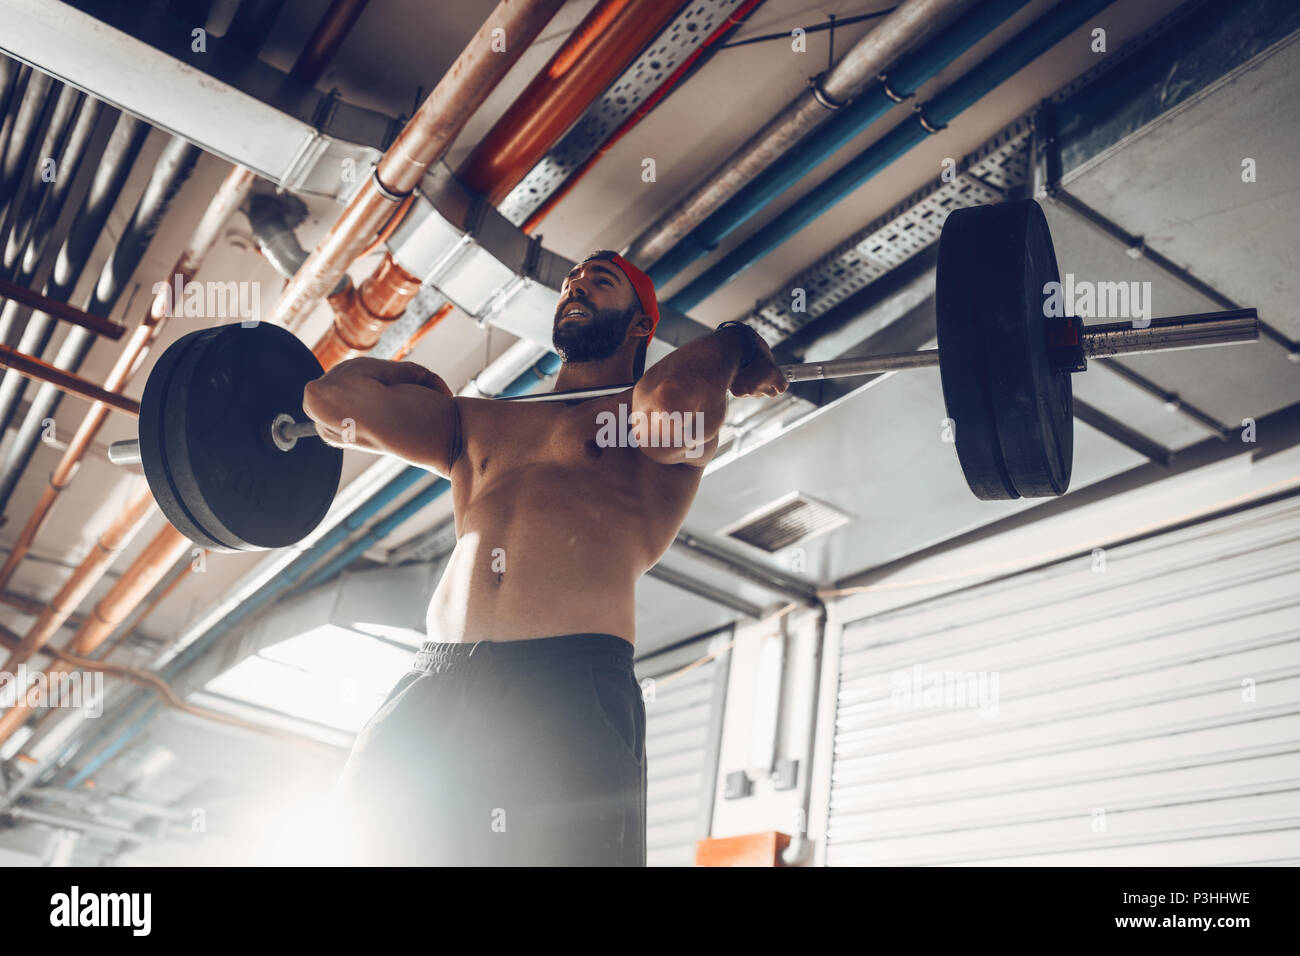 Young muscular man doing power clean exercise with barbell on hard